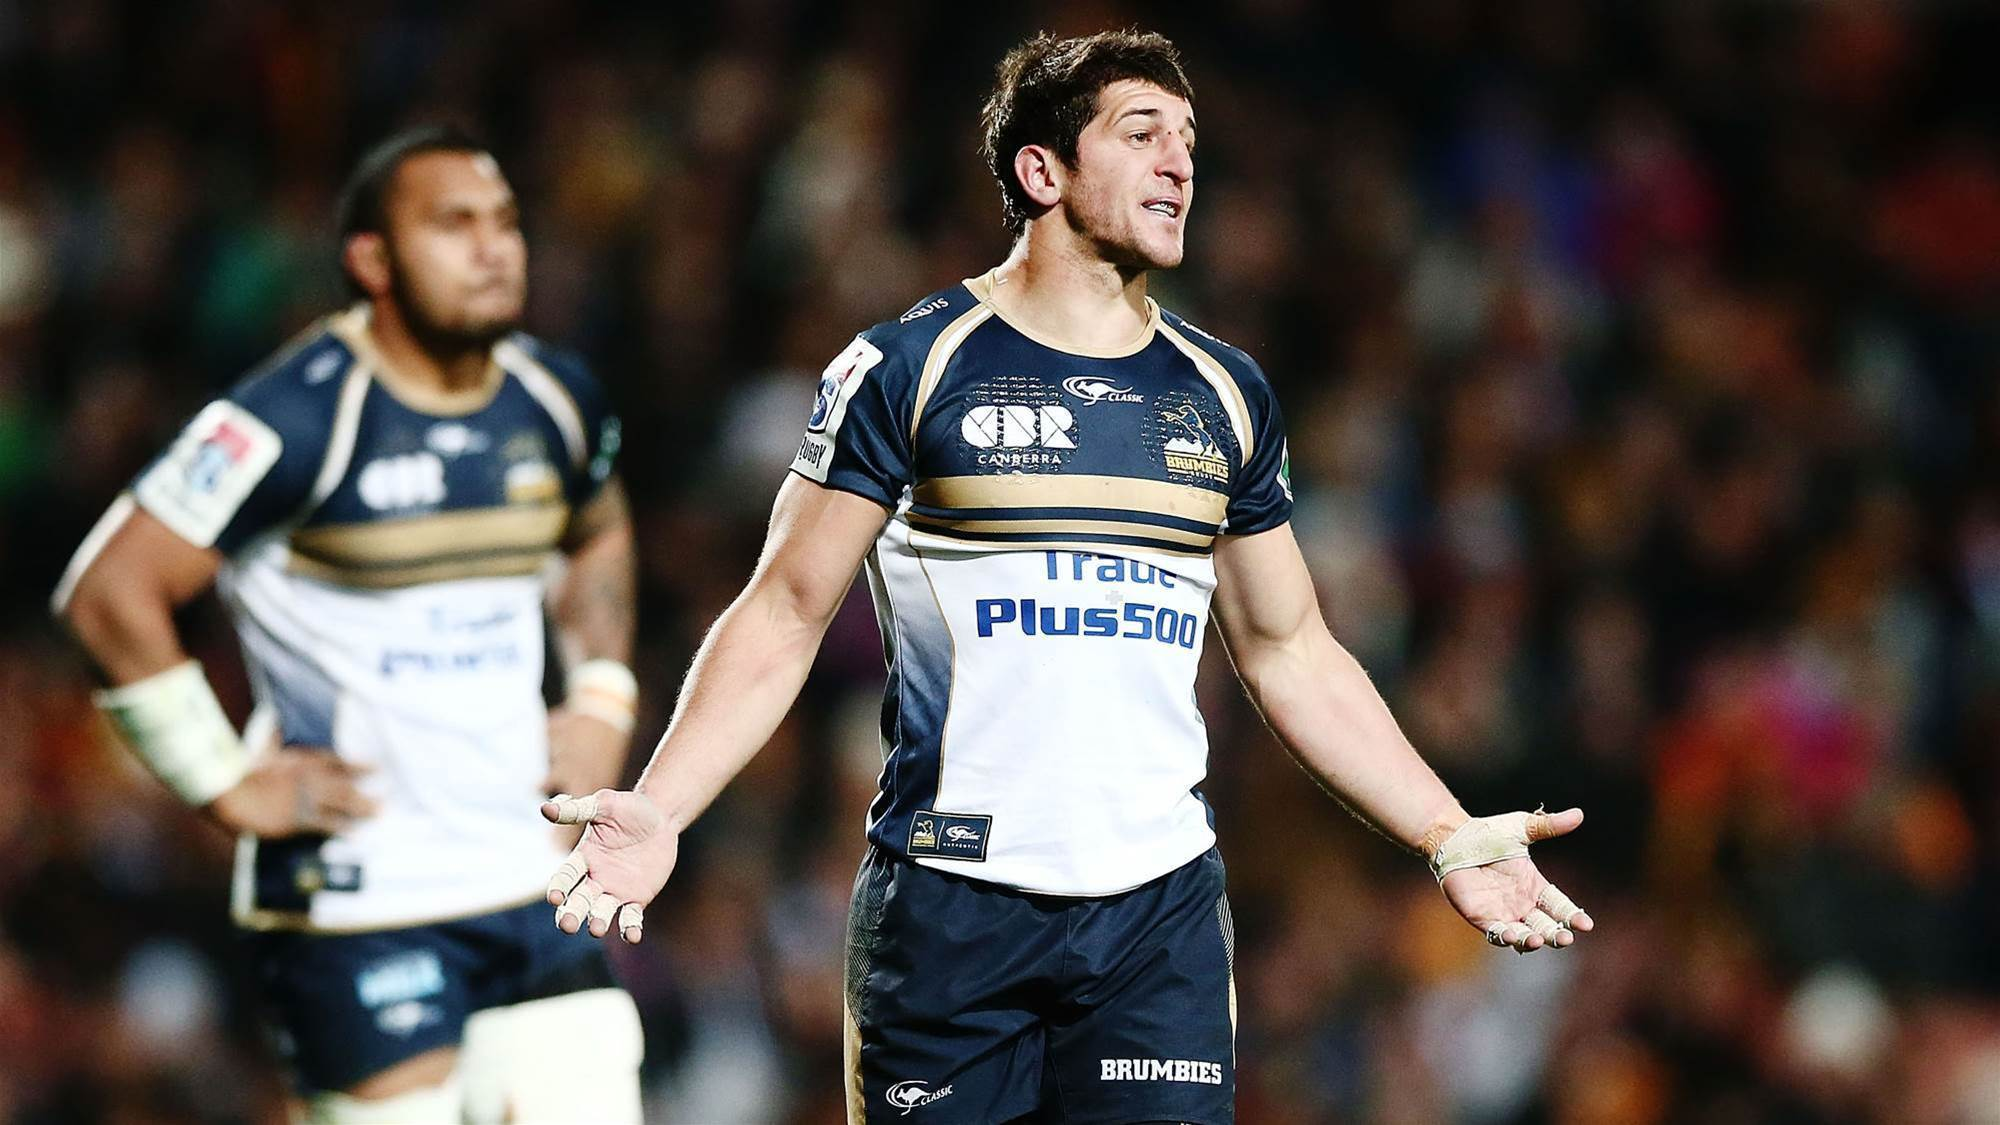 Brumbies duo sign overseas deals